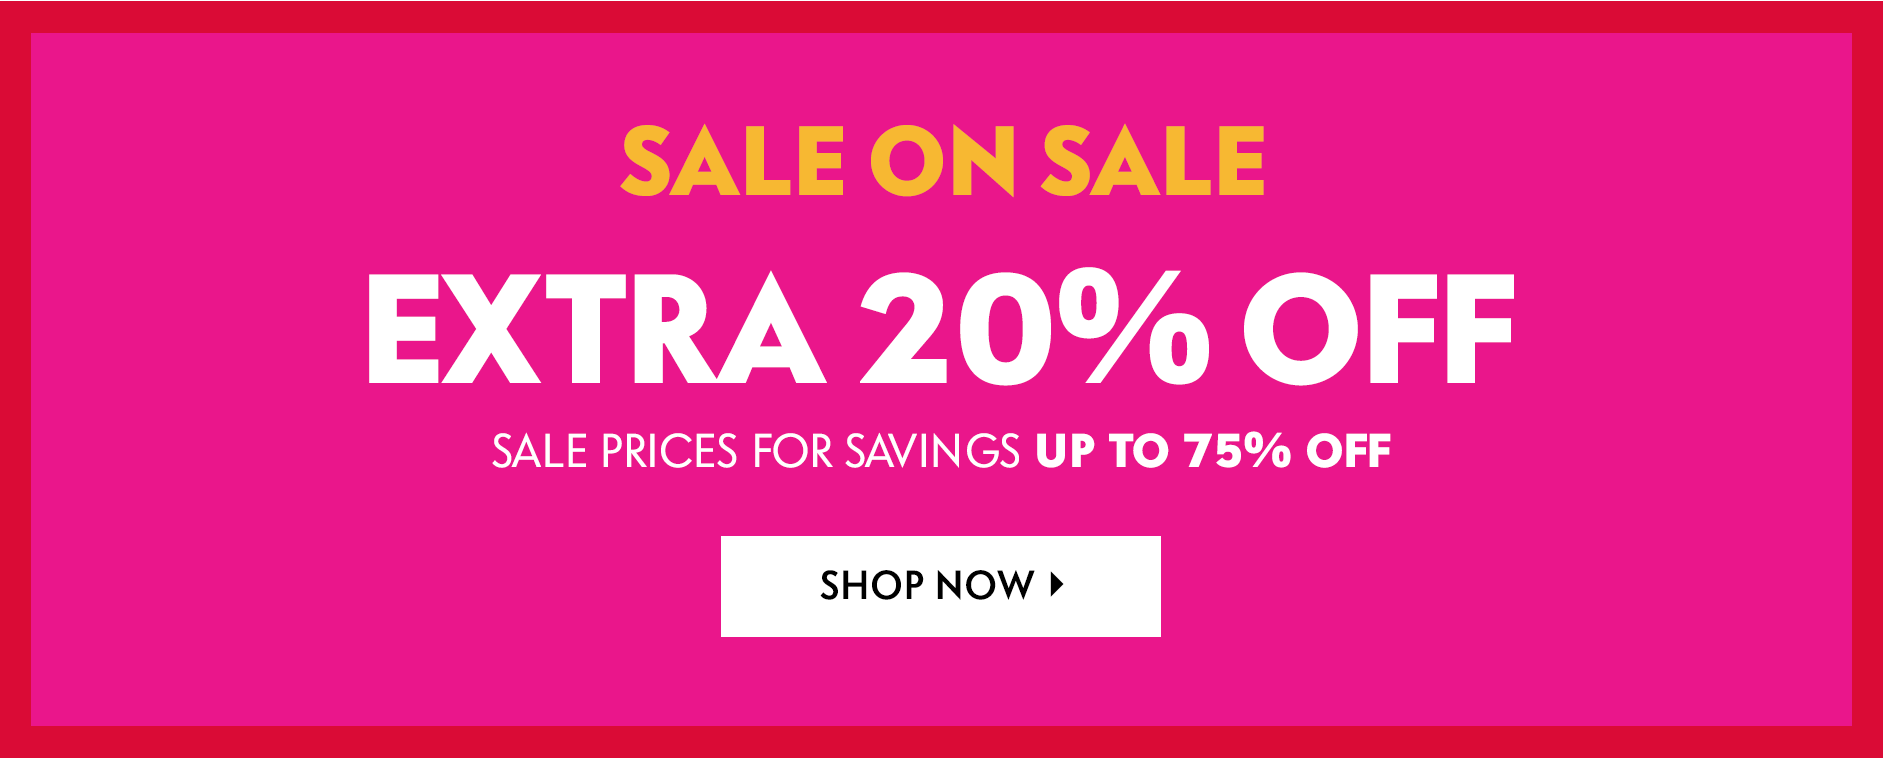 Sale On Sale - Extra 20% off sale prices